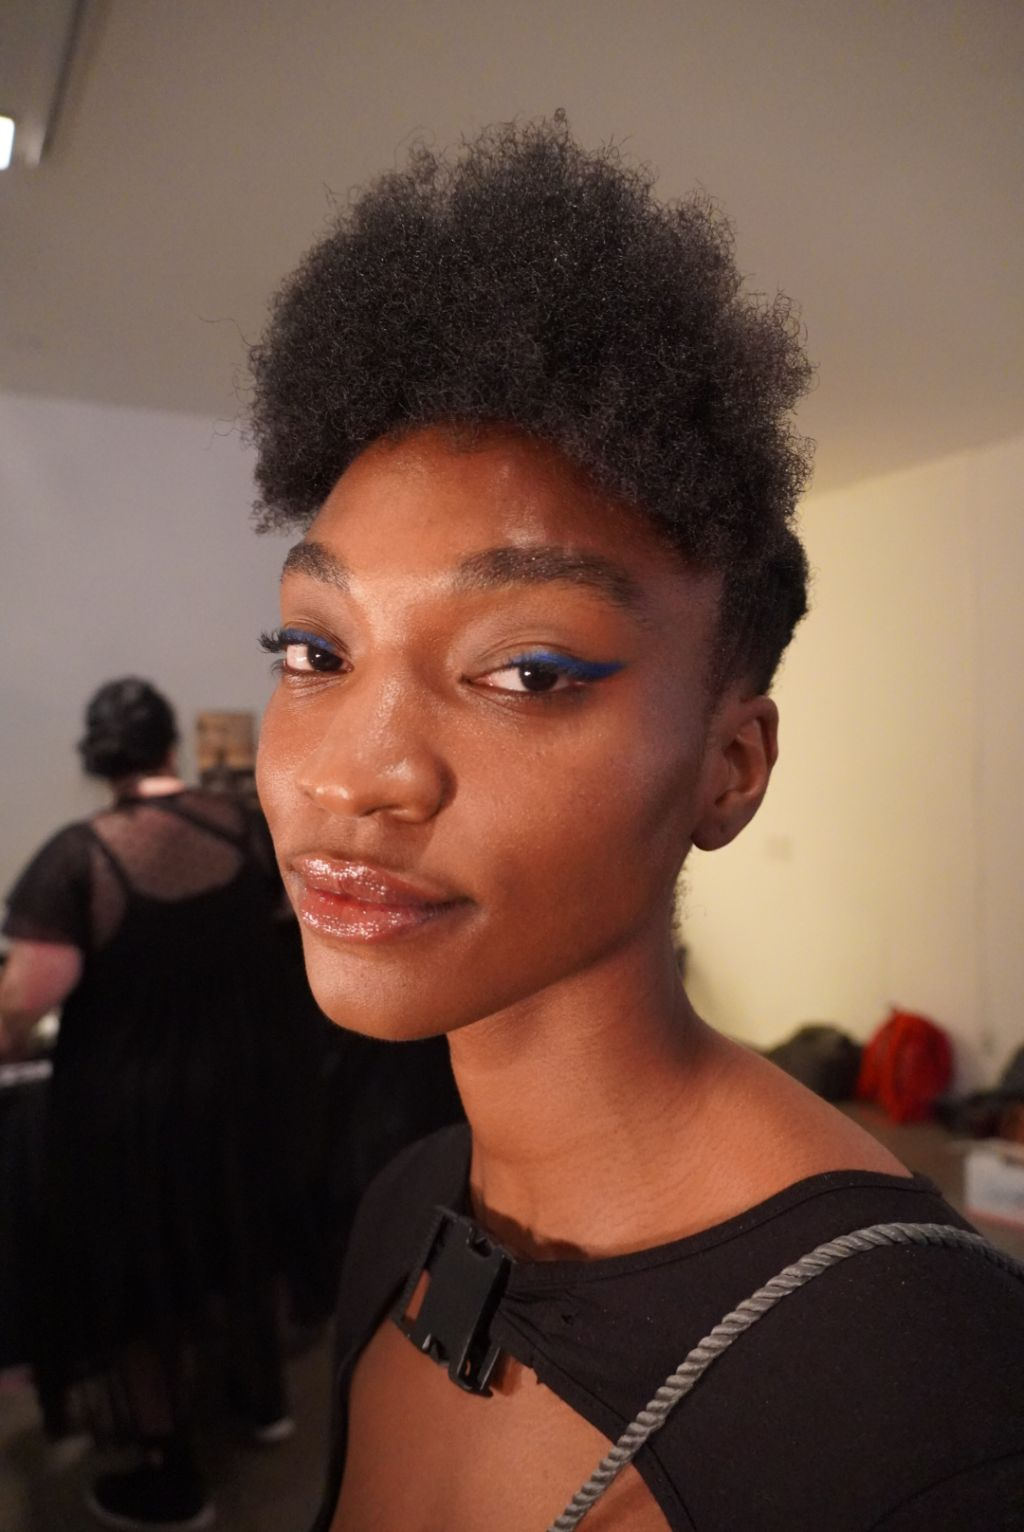 Backstage Images From Studio One Eighty Nine Spring/Summer 2020 Collection